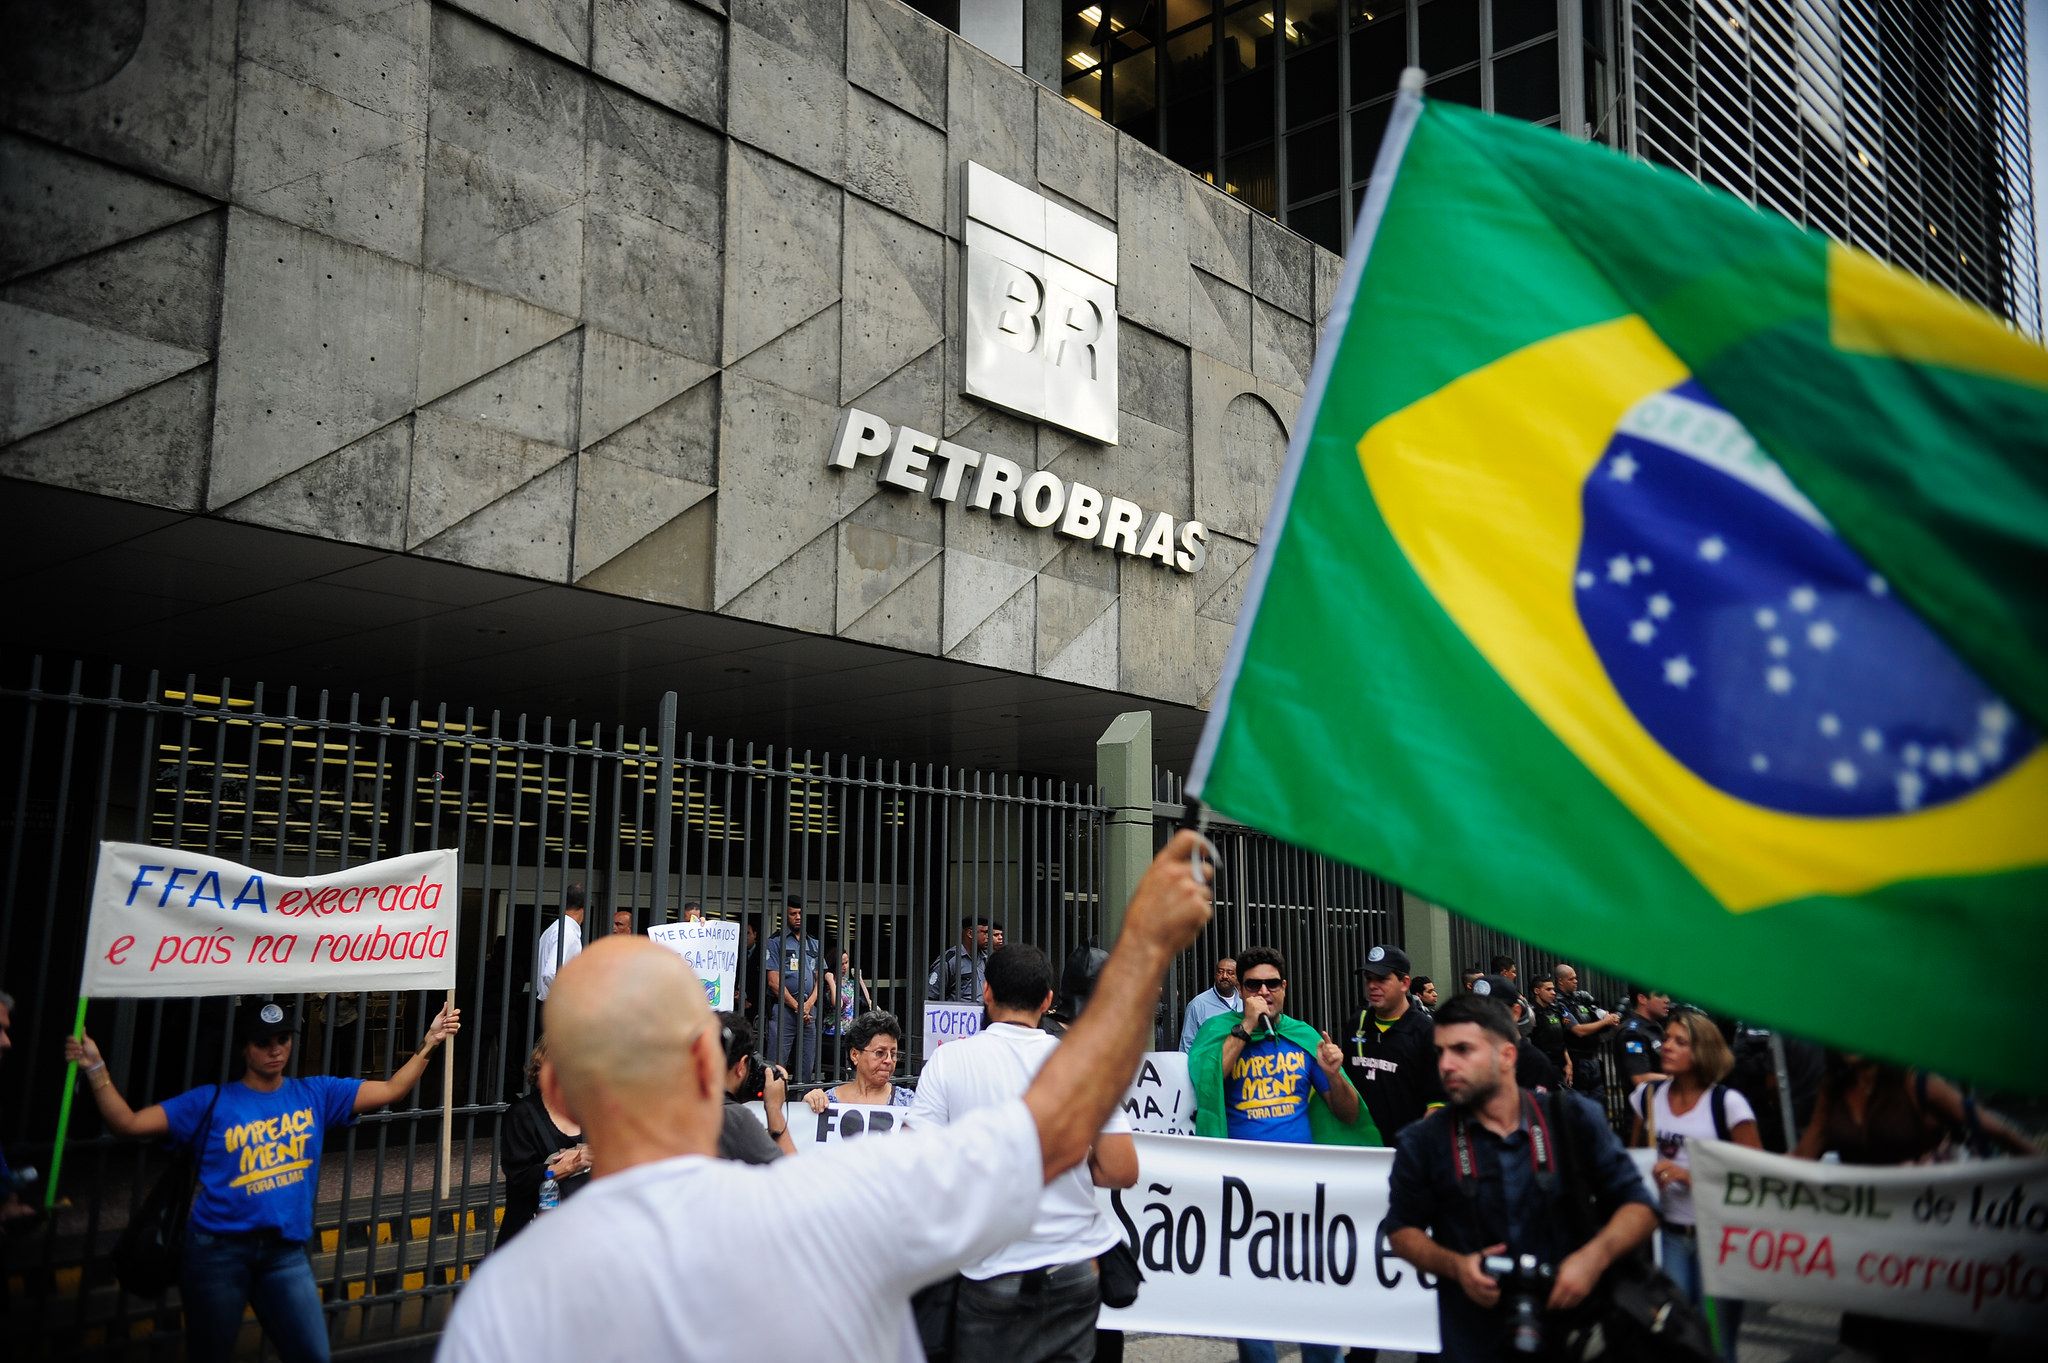 Petrobras still matters for the Brazilian economy